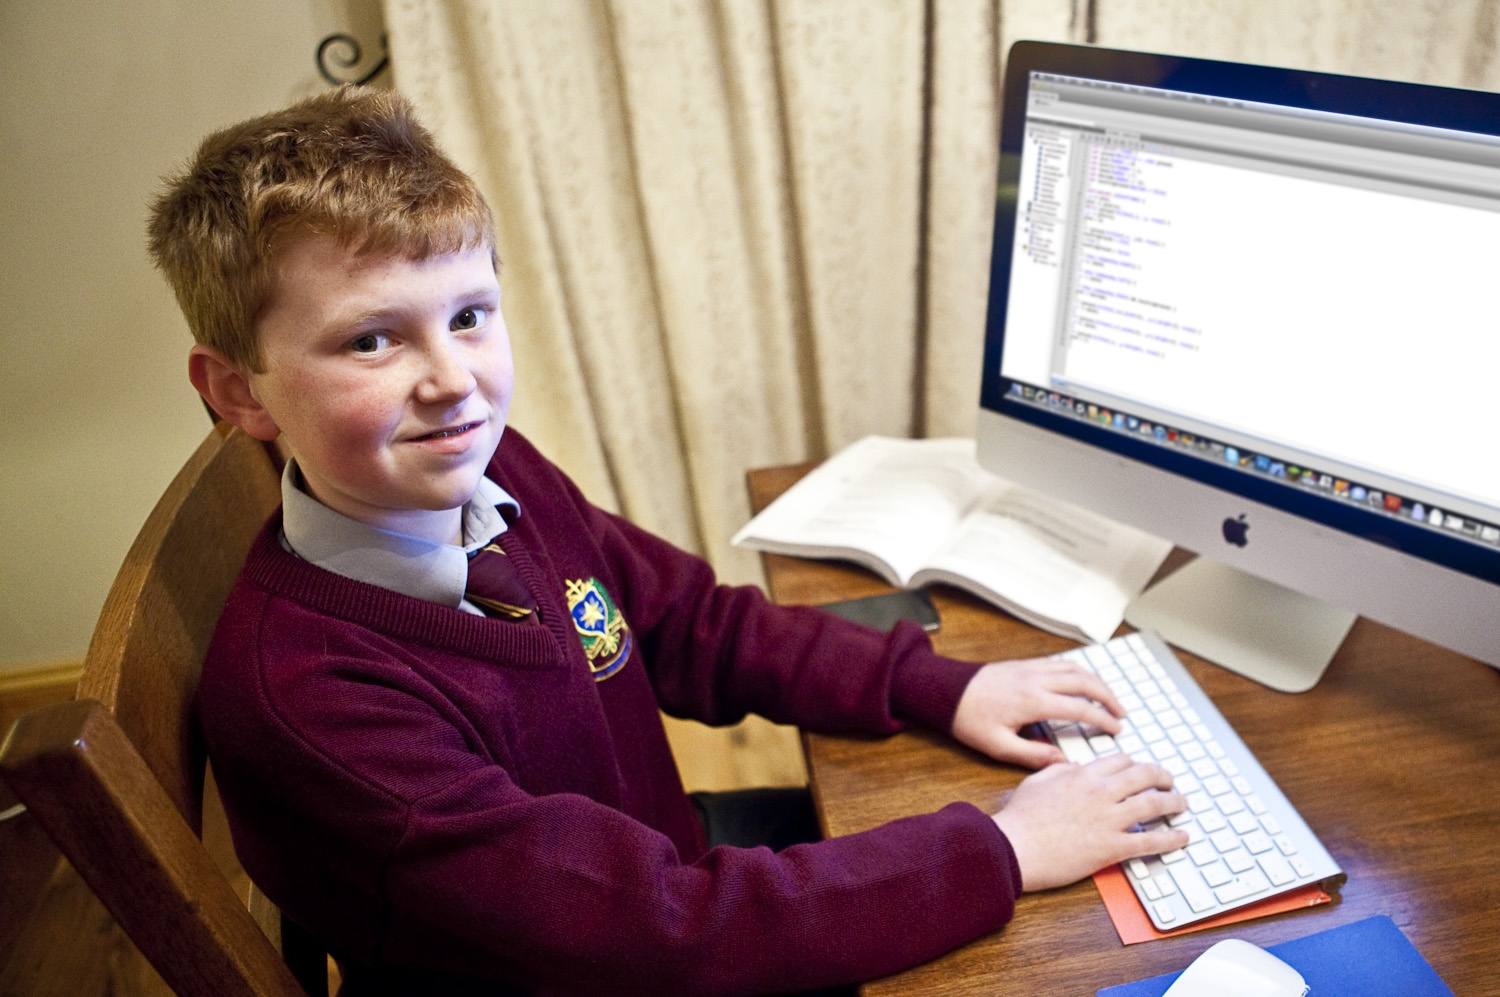 Jordan Casey: the youngest iOS app developer in Europe